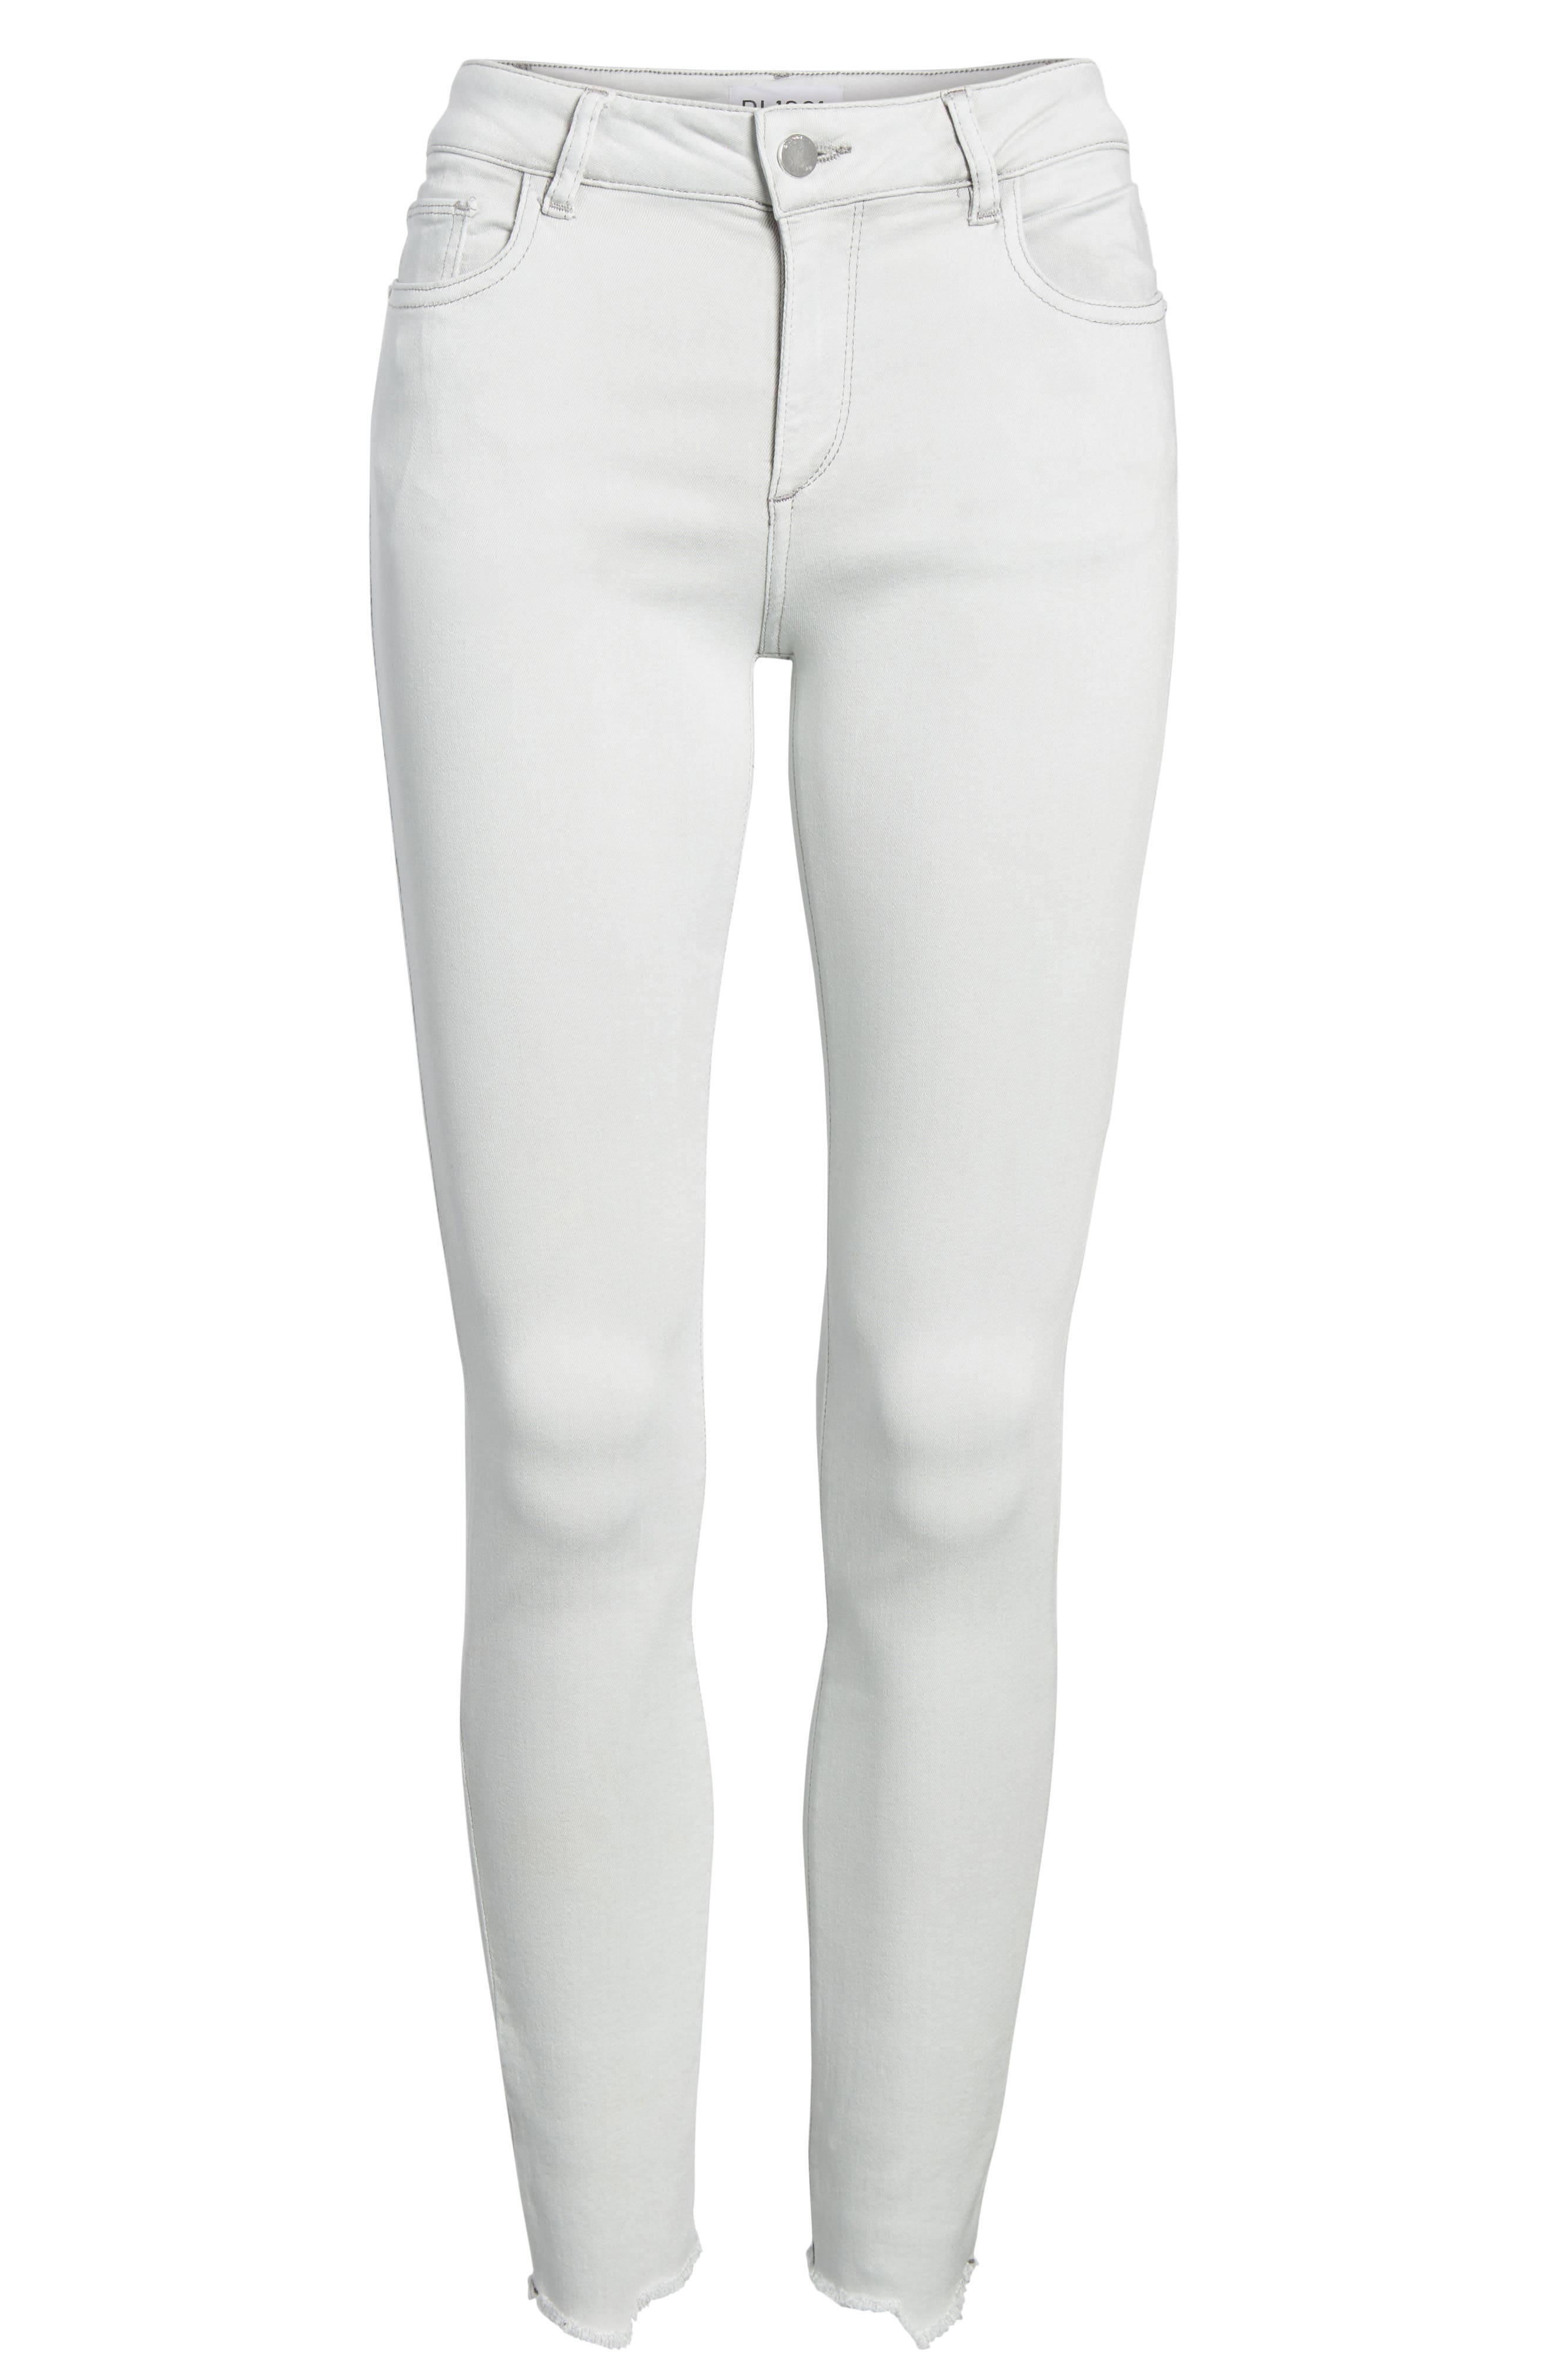 Margaux Instasculpt Ankle Skinny Jeans,                             Alternate thumbnail 7, color,                             020